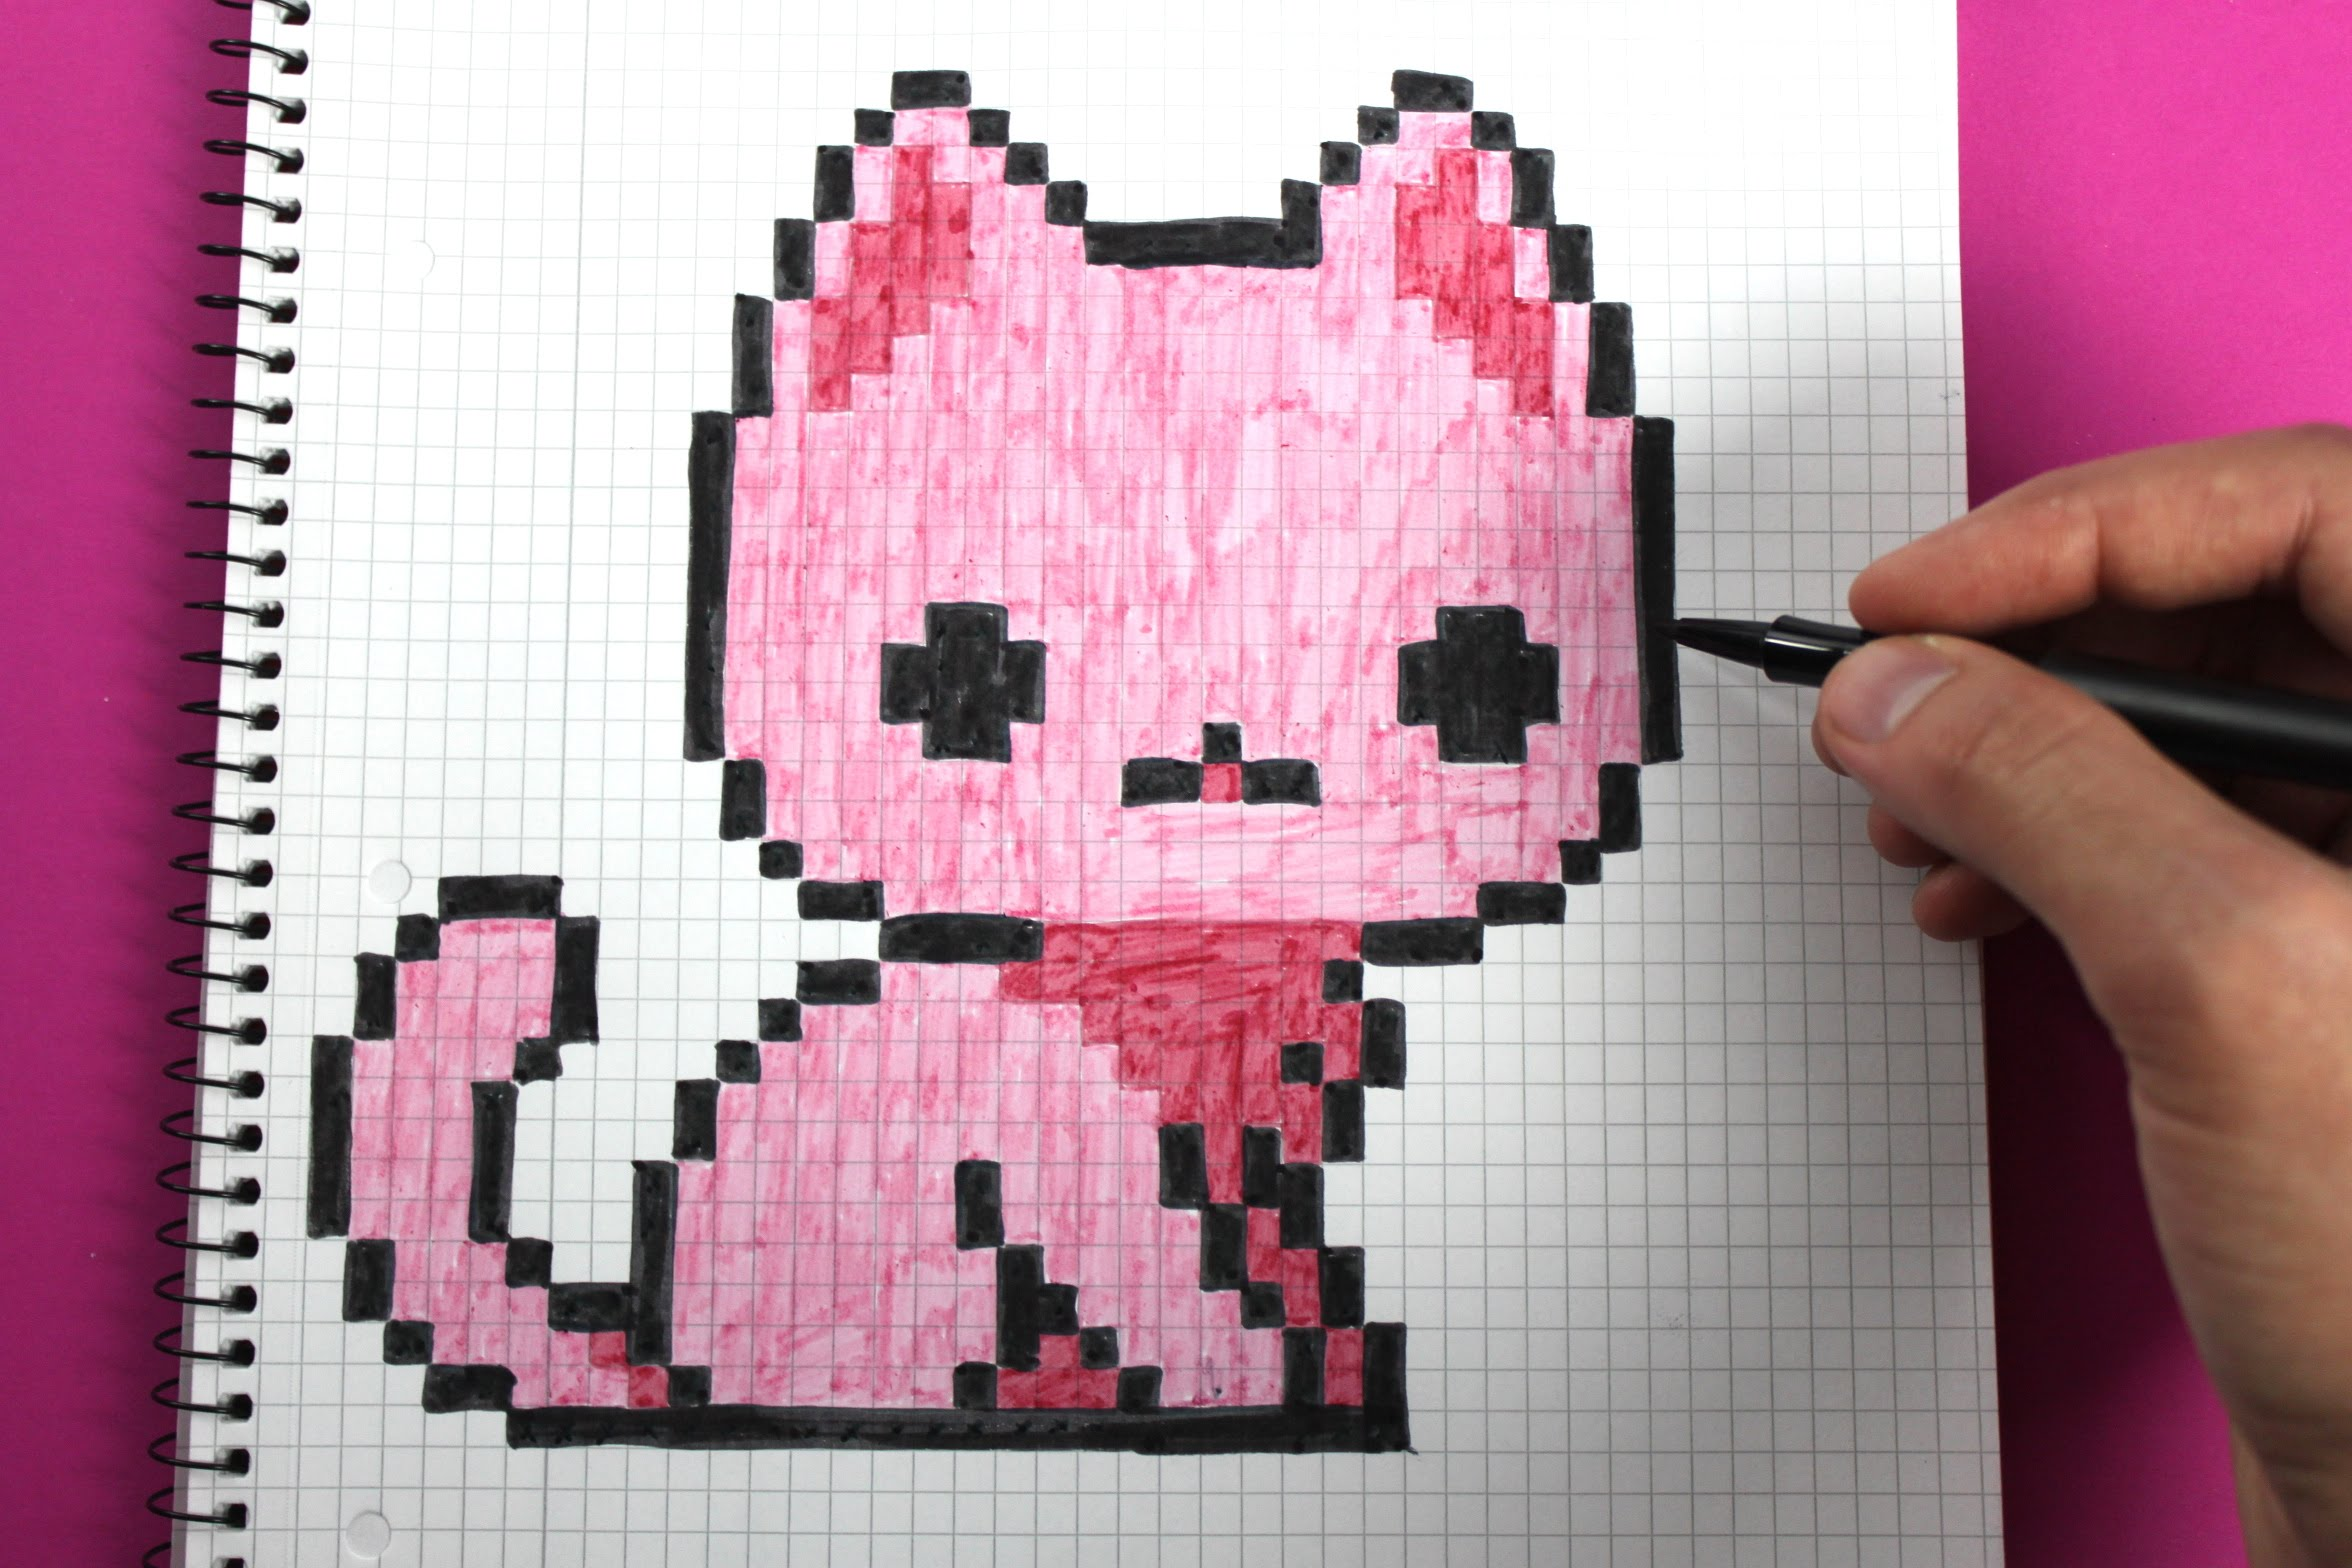 Drawn pixel art poxel To draw a Handmade How